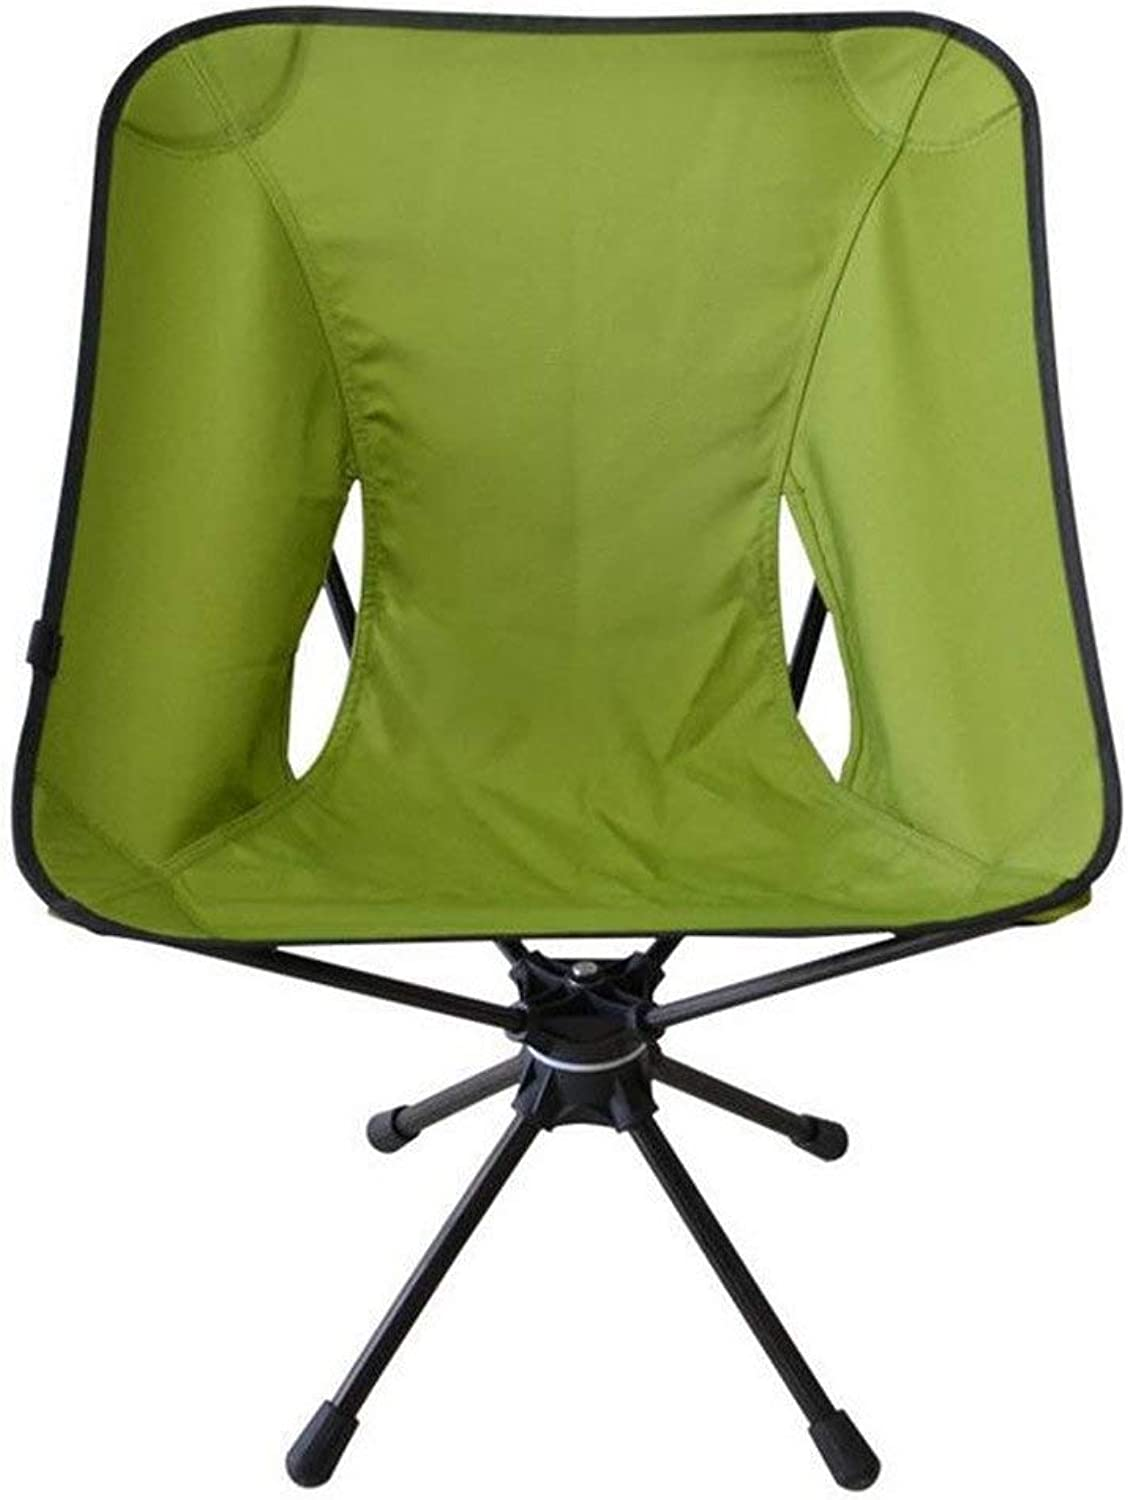 RUIMA 360° Foldable Camping and Sport Hunting Chair, Ultra Light Portable Fishing Camping Hiking Barbecue - Comfortable Folding Tufted Swivel Chair (color   Green)